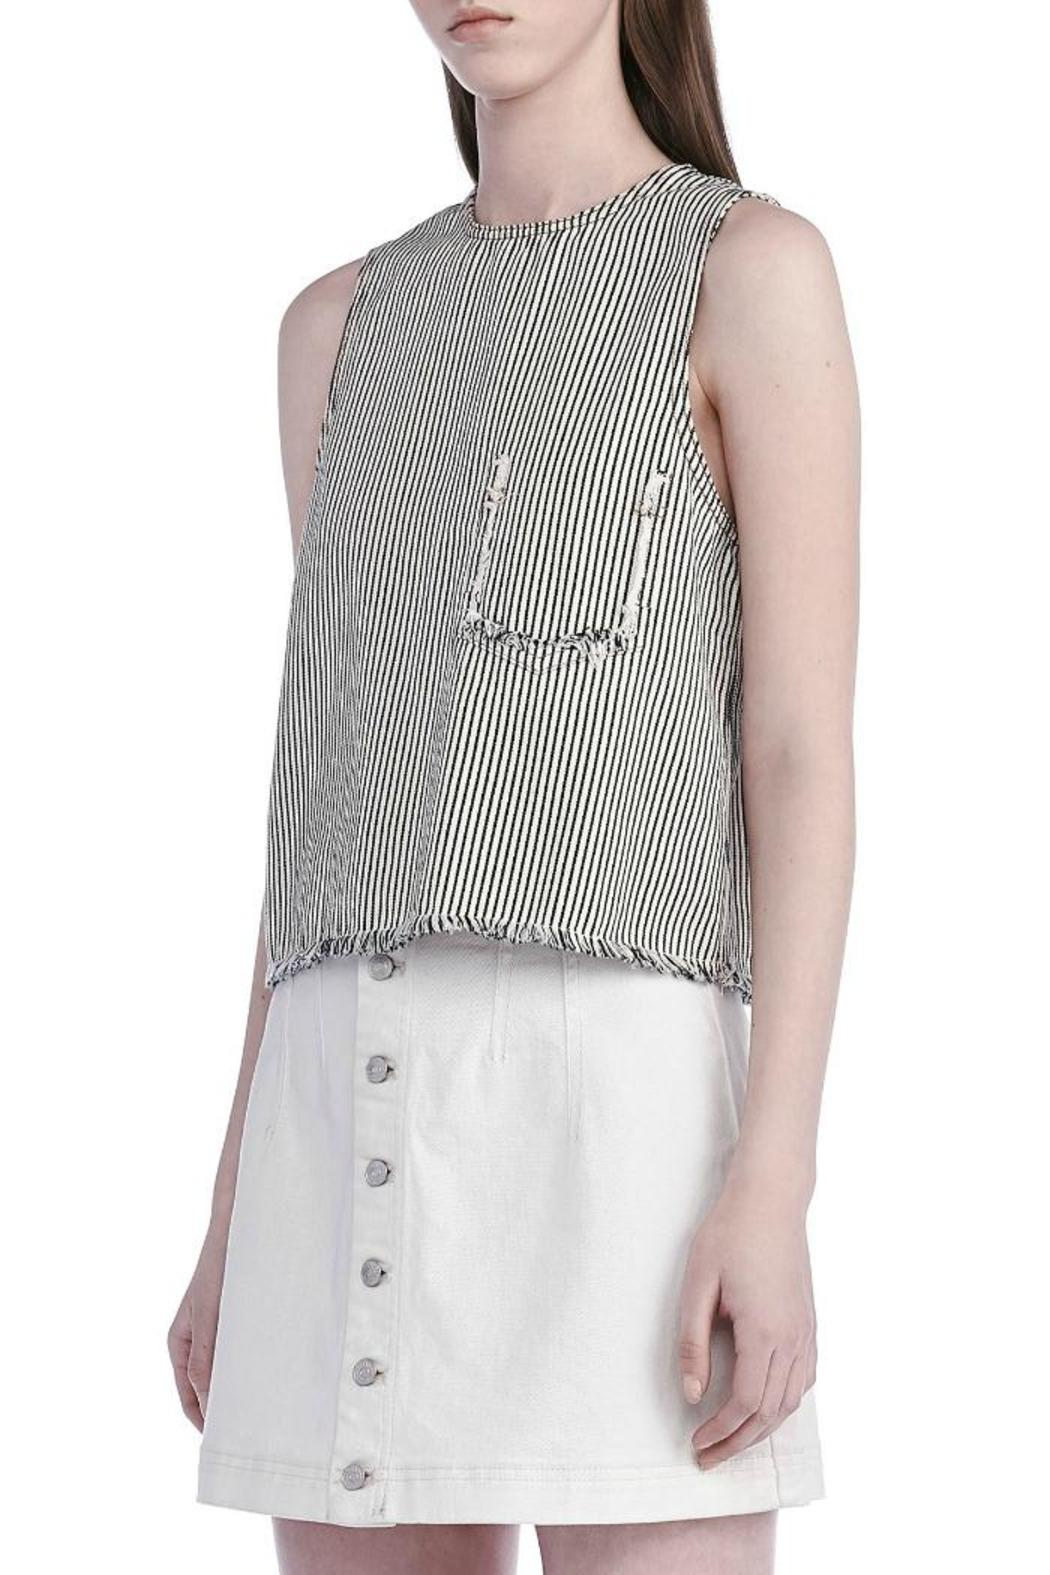 T by Alexander Wang Frayed Crop Top - Front Full Image